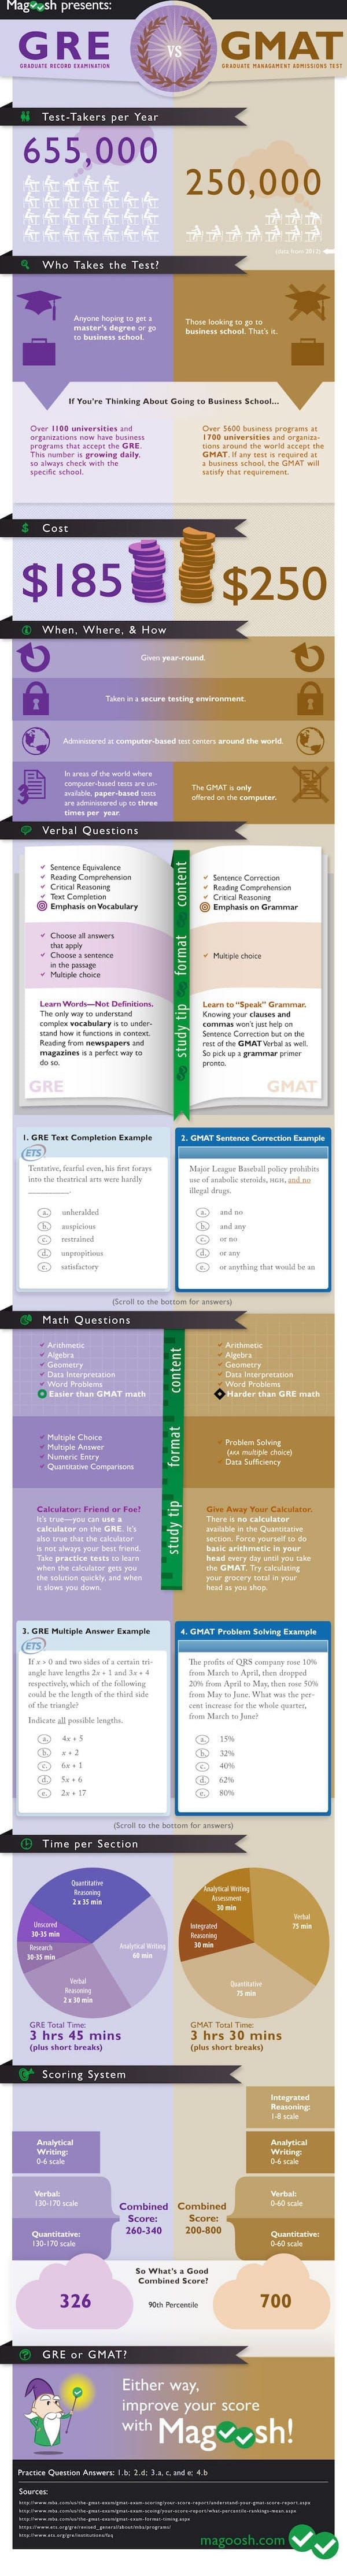 GRE vs GMAT Infographic by Magoosh